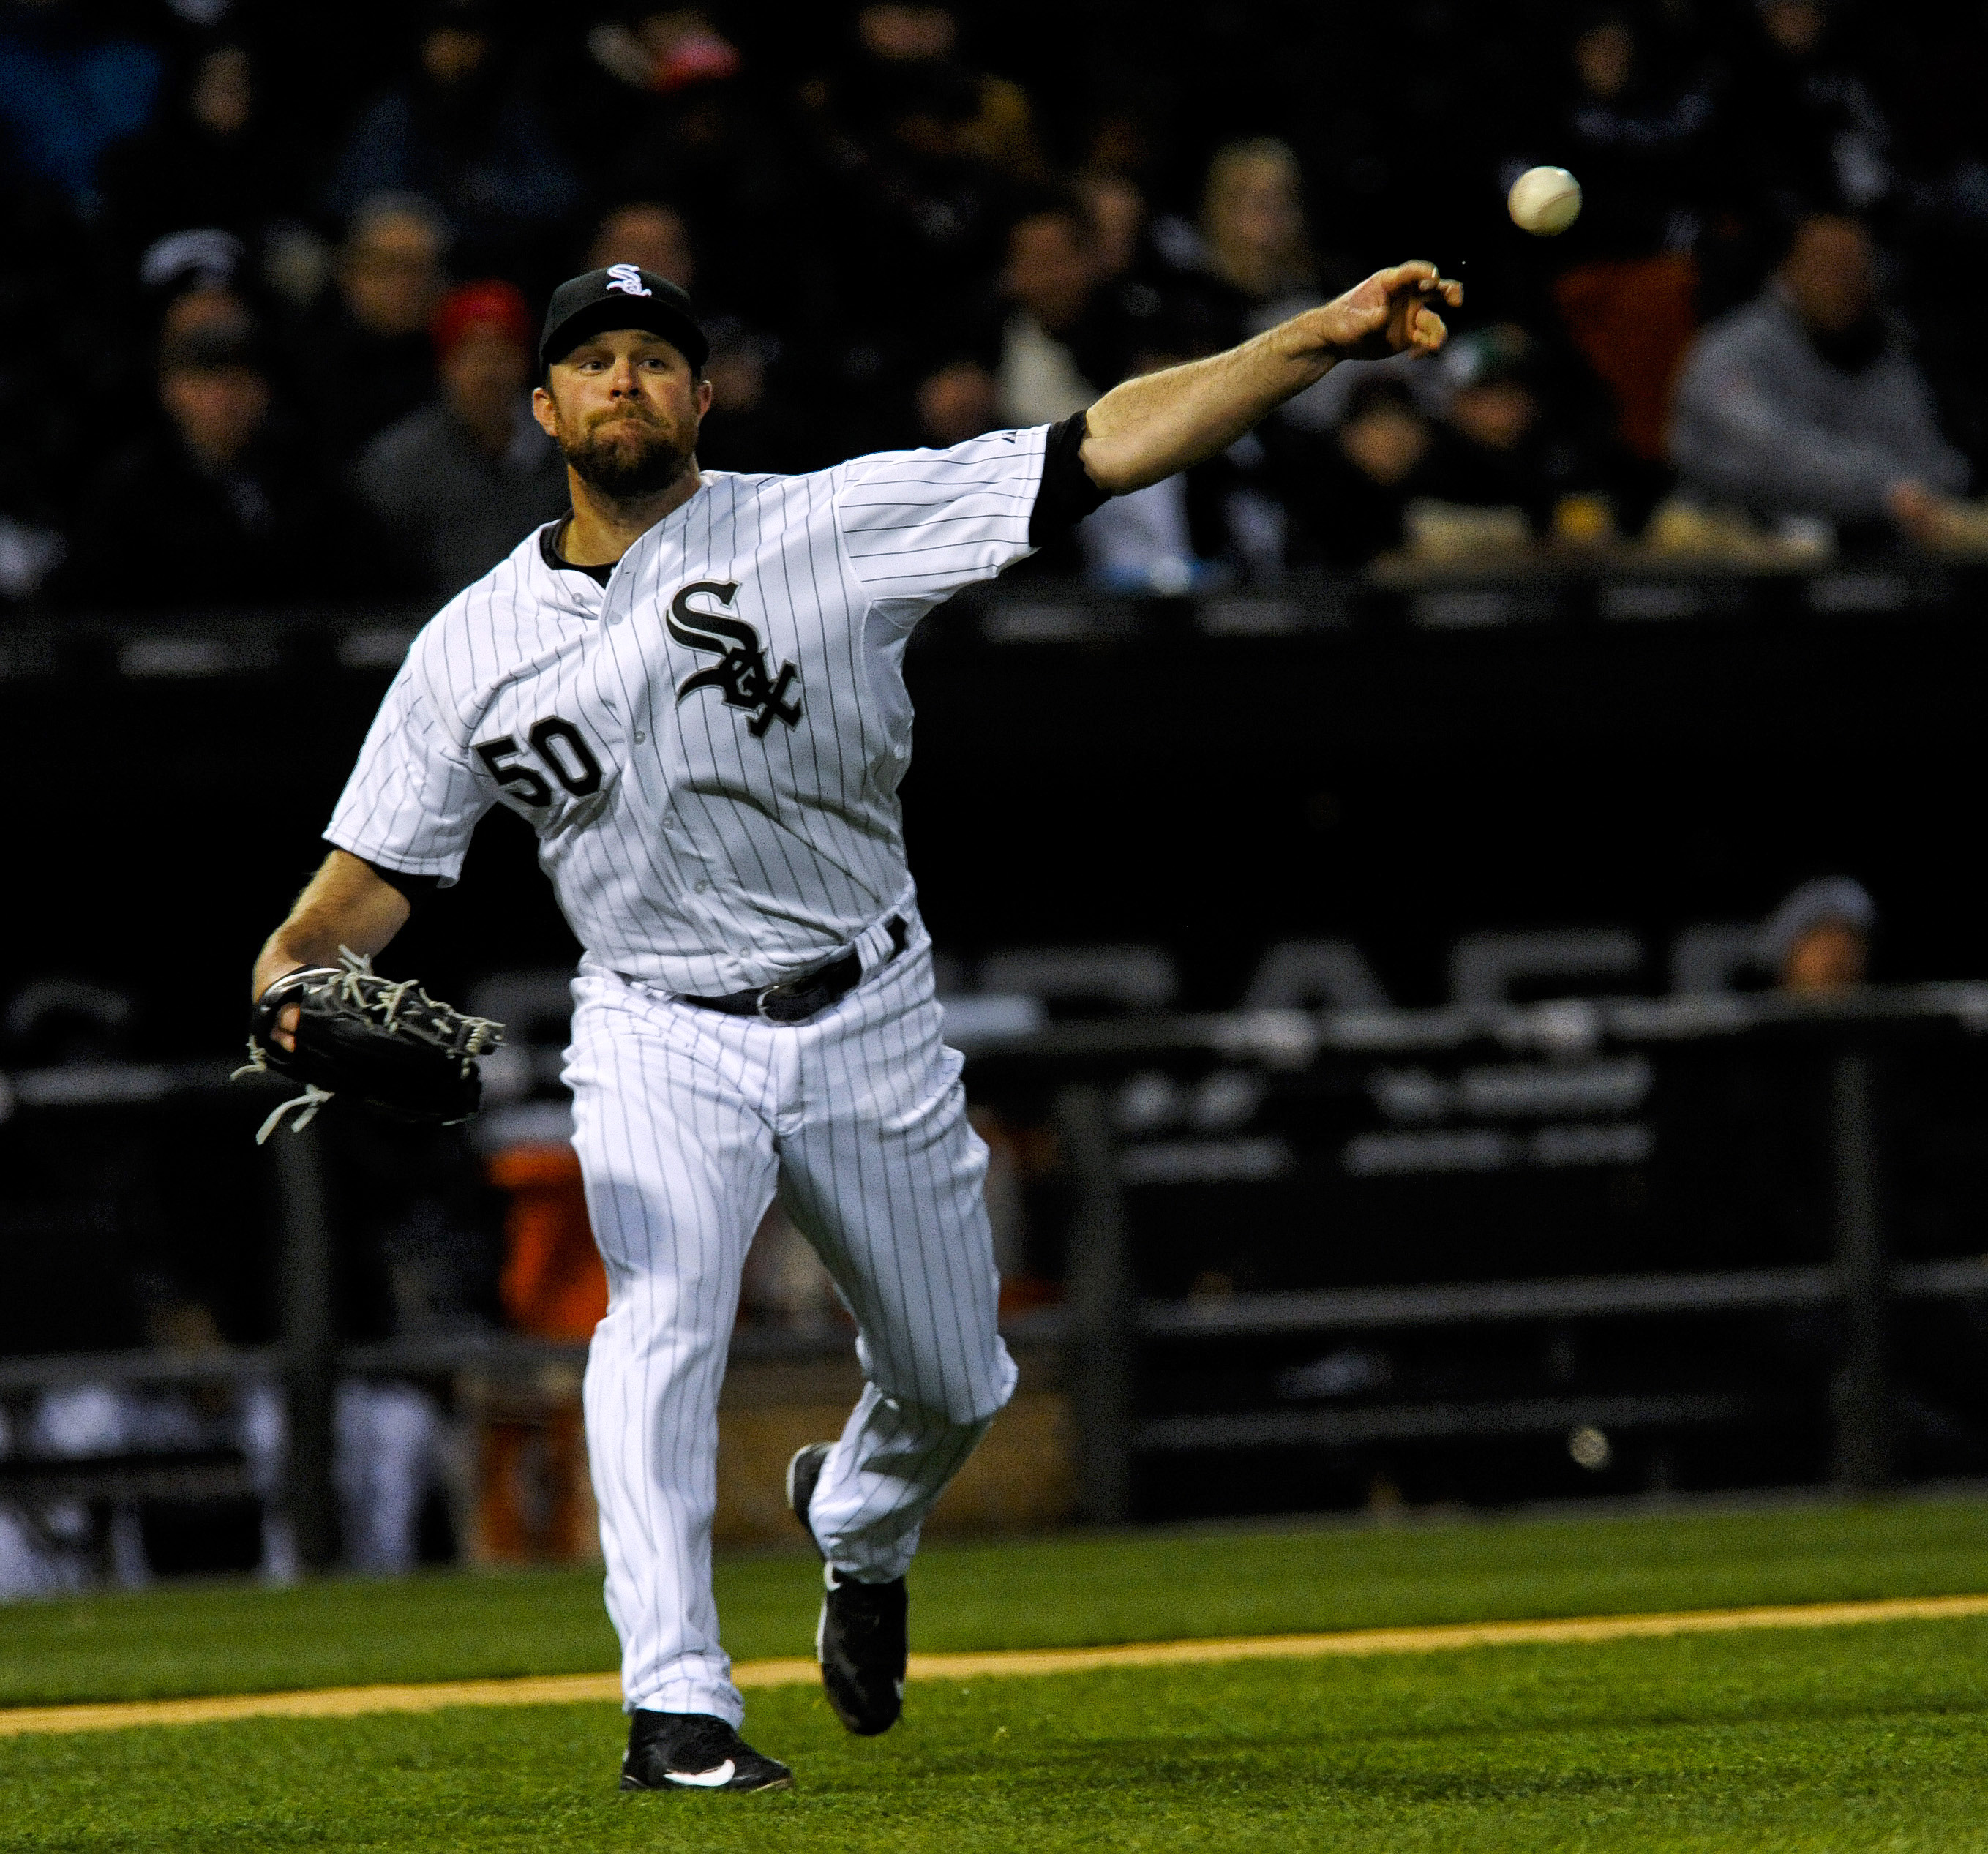 Chicago White Sox starting pitcher John Danks throws out Cleveland Indians shortstop Jose Ramirez after he attempted to bunt  during the third  inning of an baseball game on Monday, April 20, 2015, in Chicago. (AP Photo/Matt Marton)